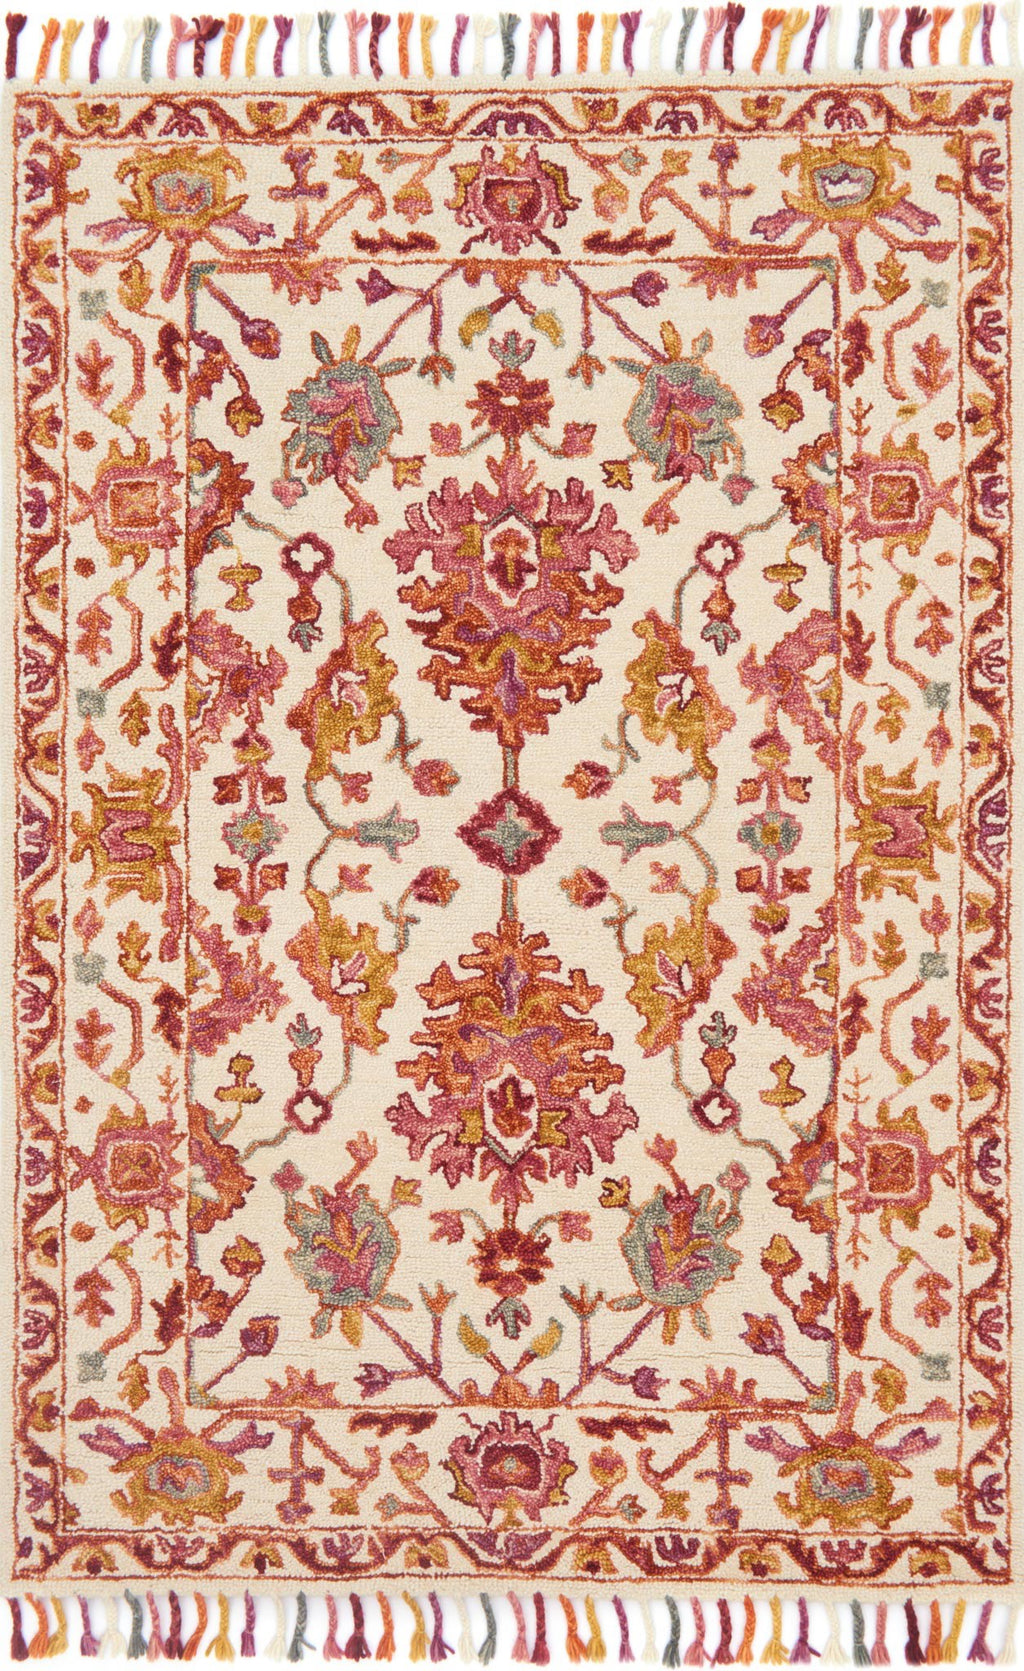 Daydream - 06 Berry - WORLD OF RUGS